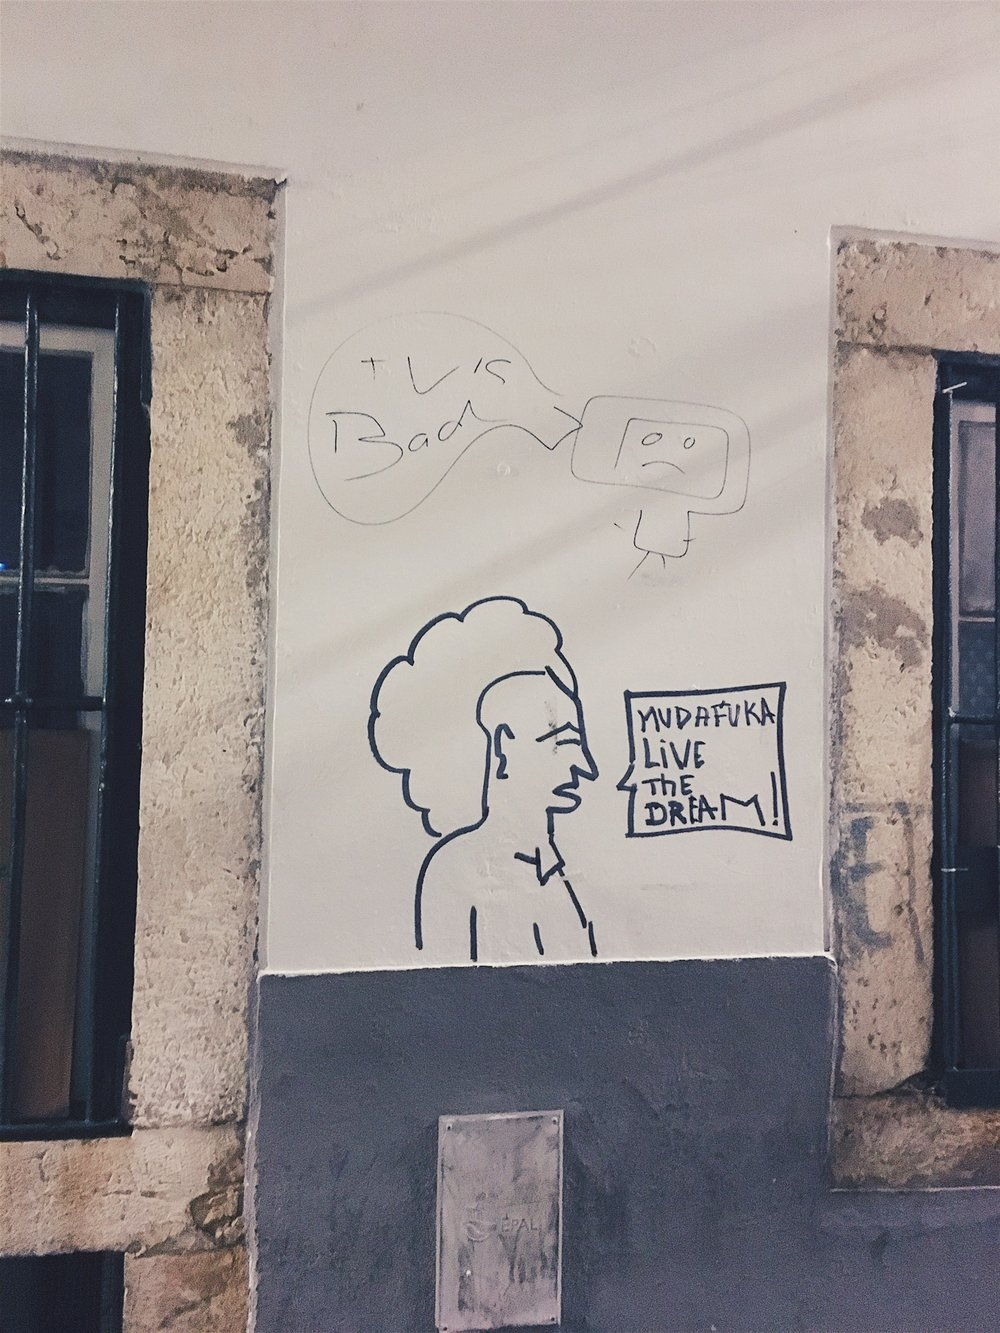 Sage advice from the streets: TV is bad; Live the DREAM!